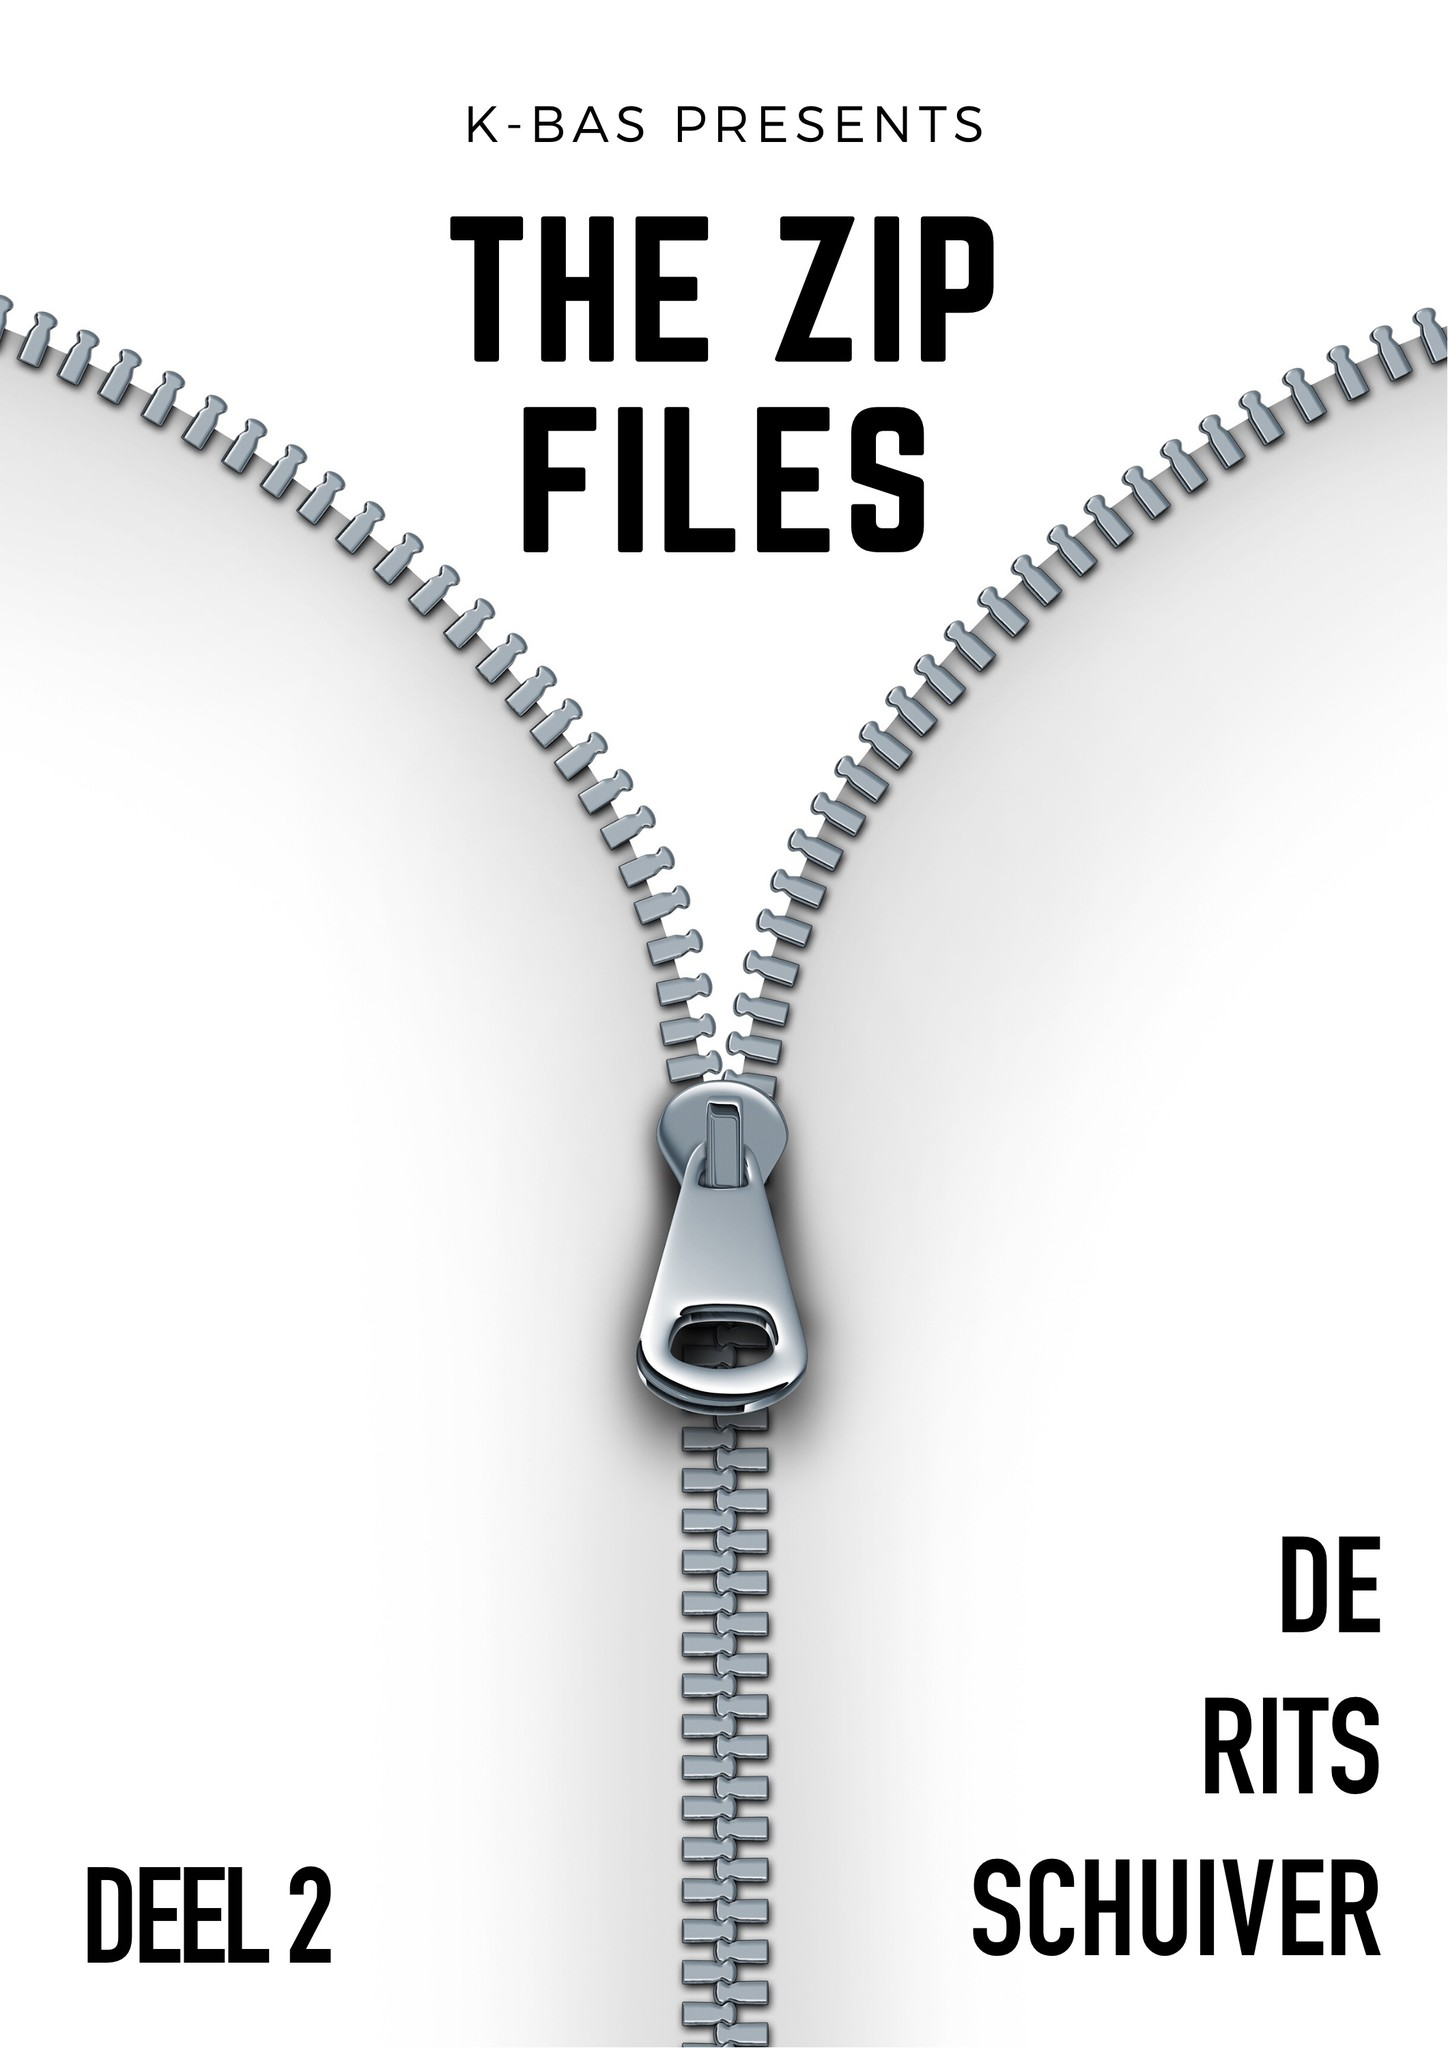 The zip files: deel 2 - de ritsschuiver